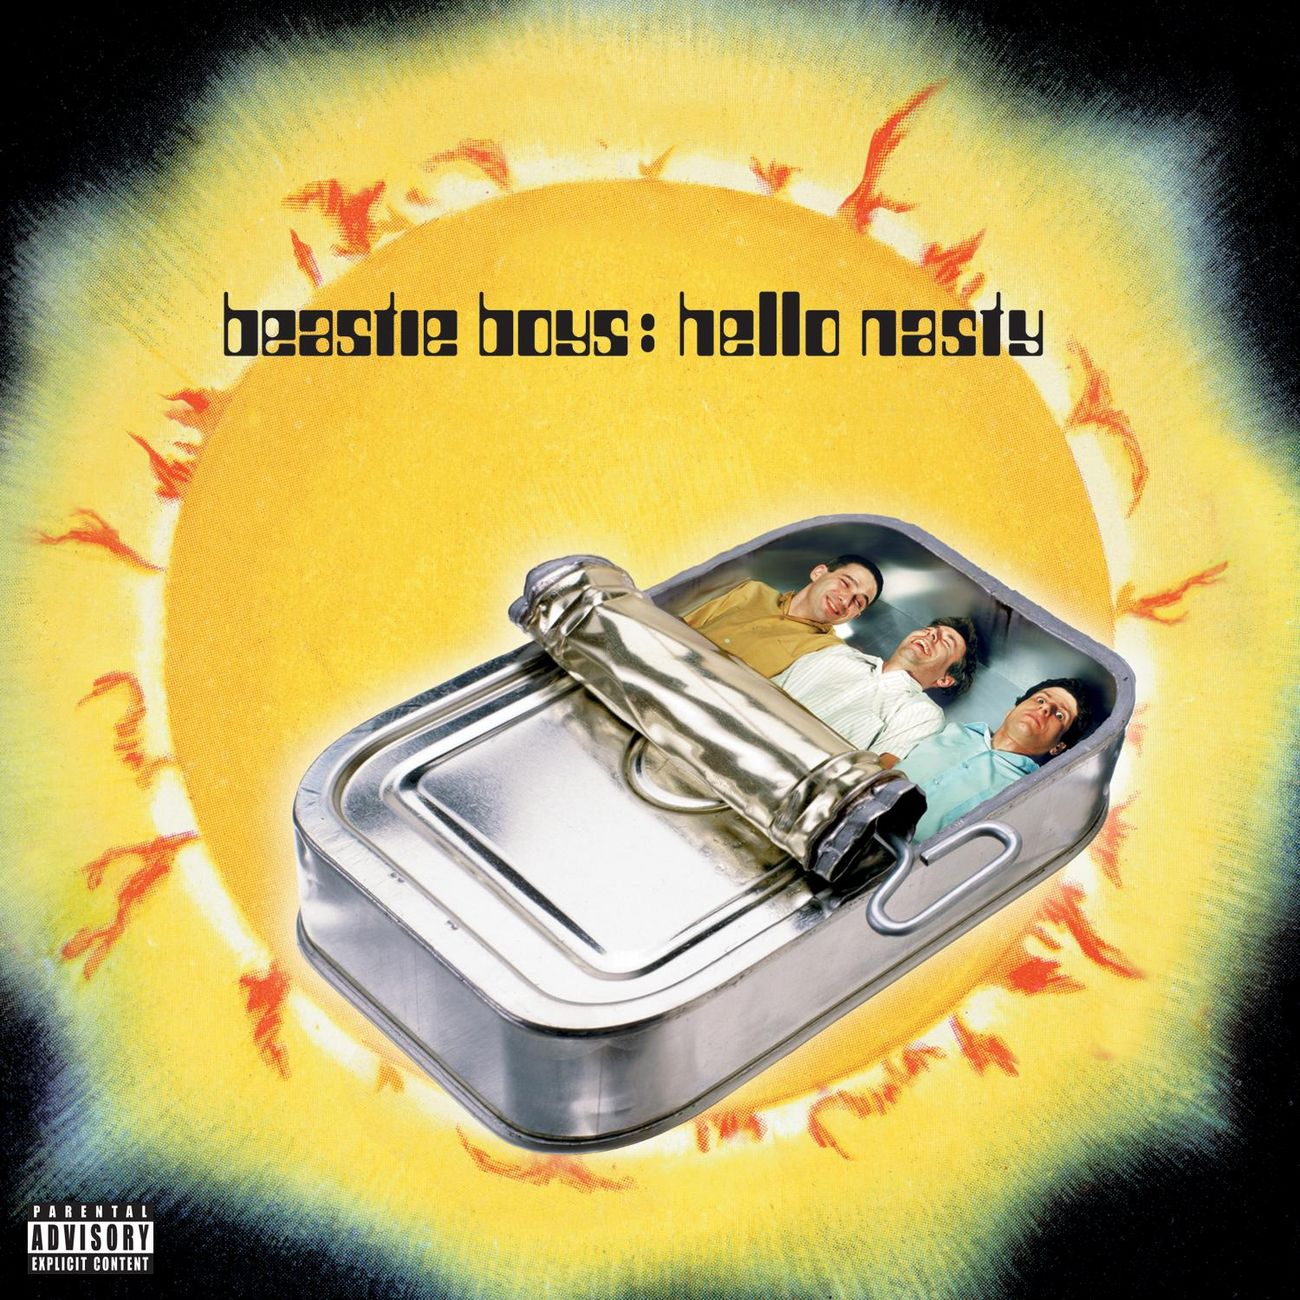 Hello nasty (Remastered edition)